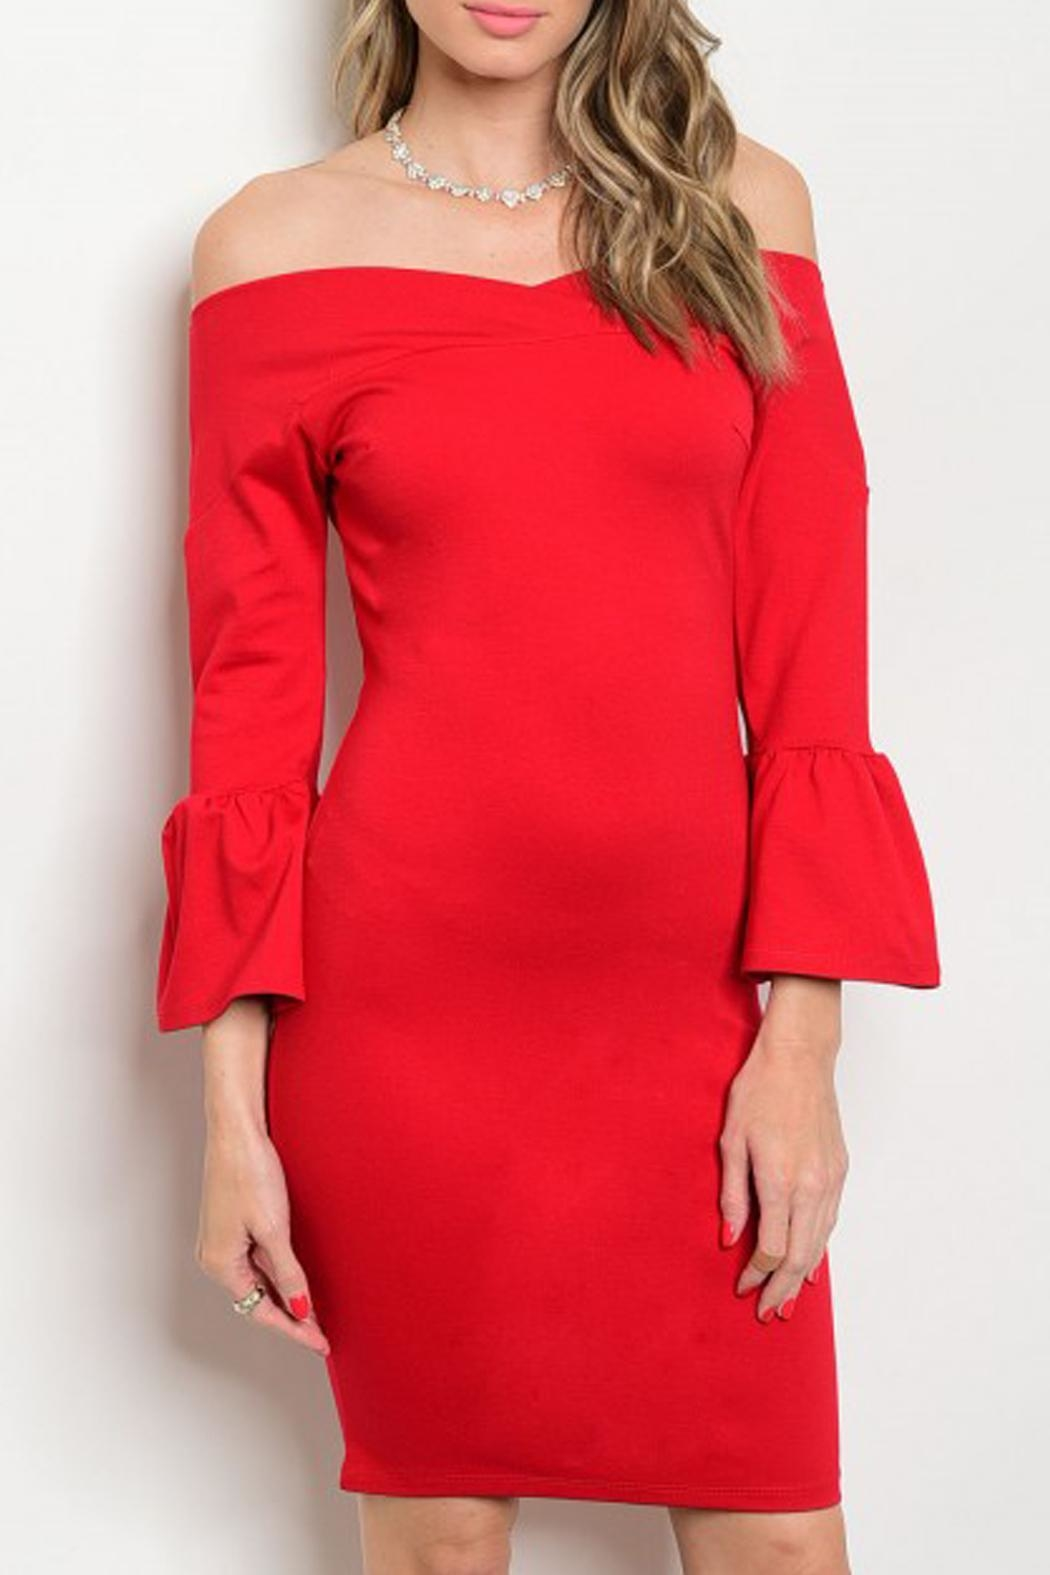 In Style Bell-Sleeve Red Dress - Main Image